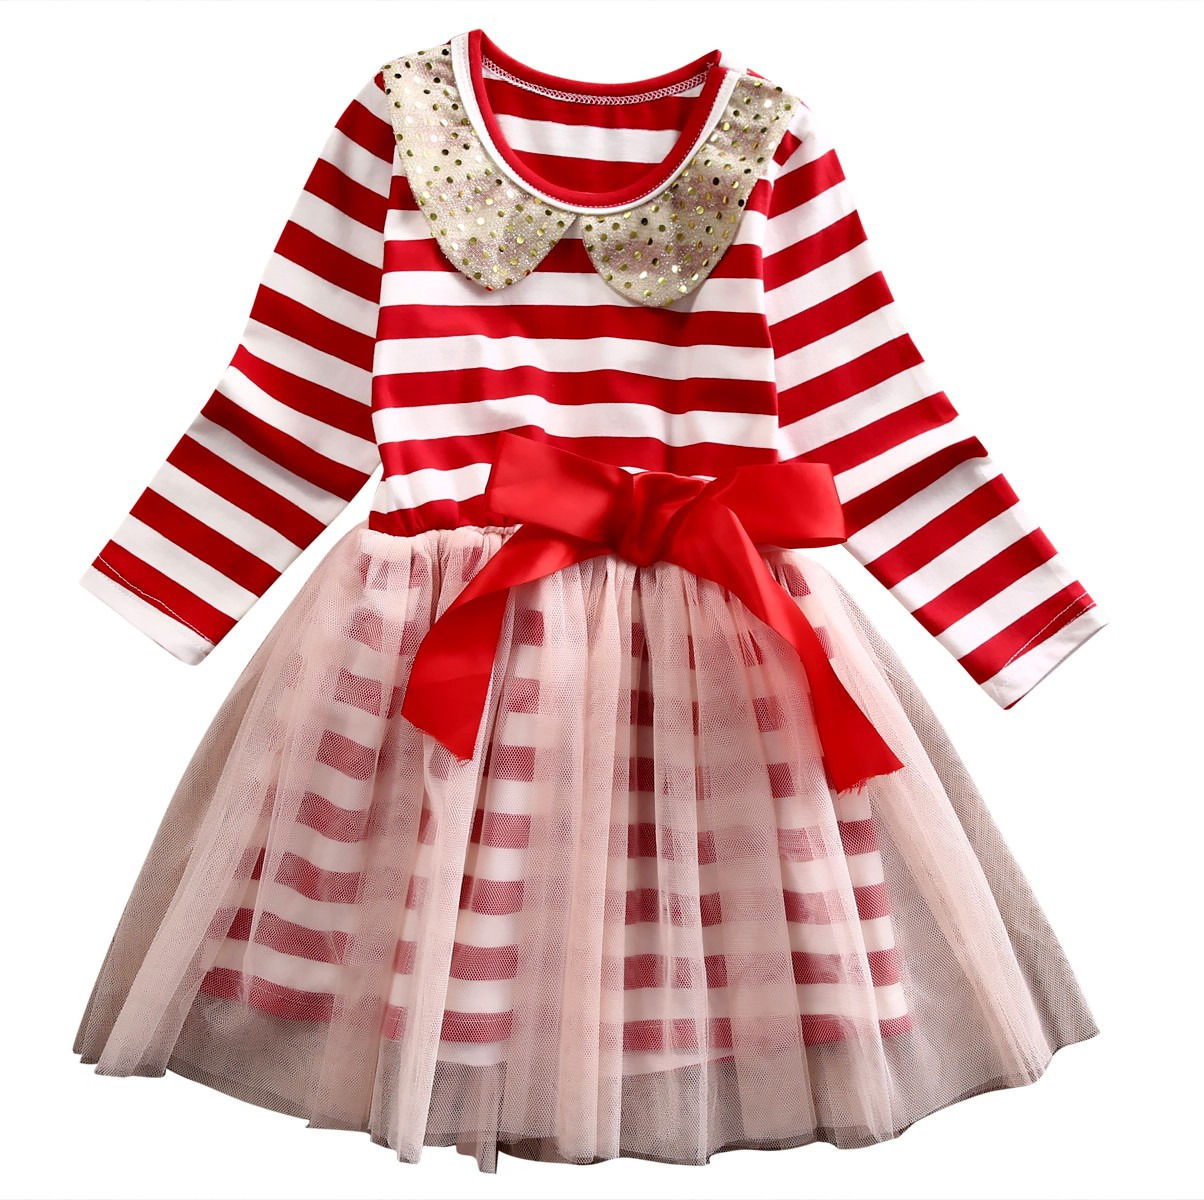 Girl Enfant Clothes Stripe Bow Tulle Party Ball Gown Dress Long Sleeve Toddler Kids Baby Girls Clothing Dresses Xmas Princess